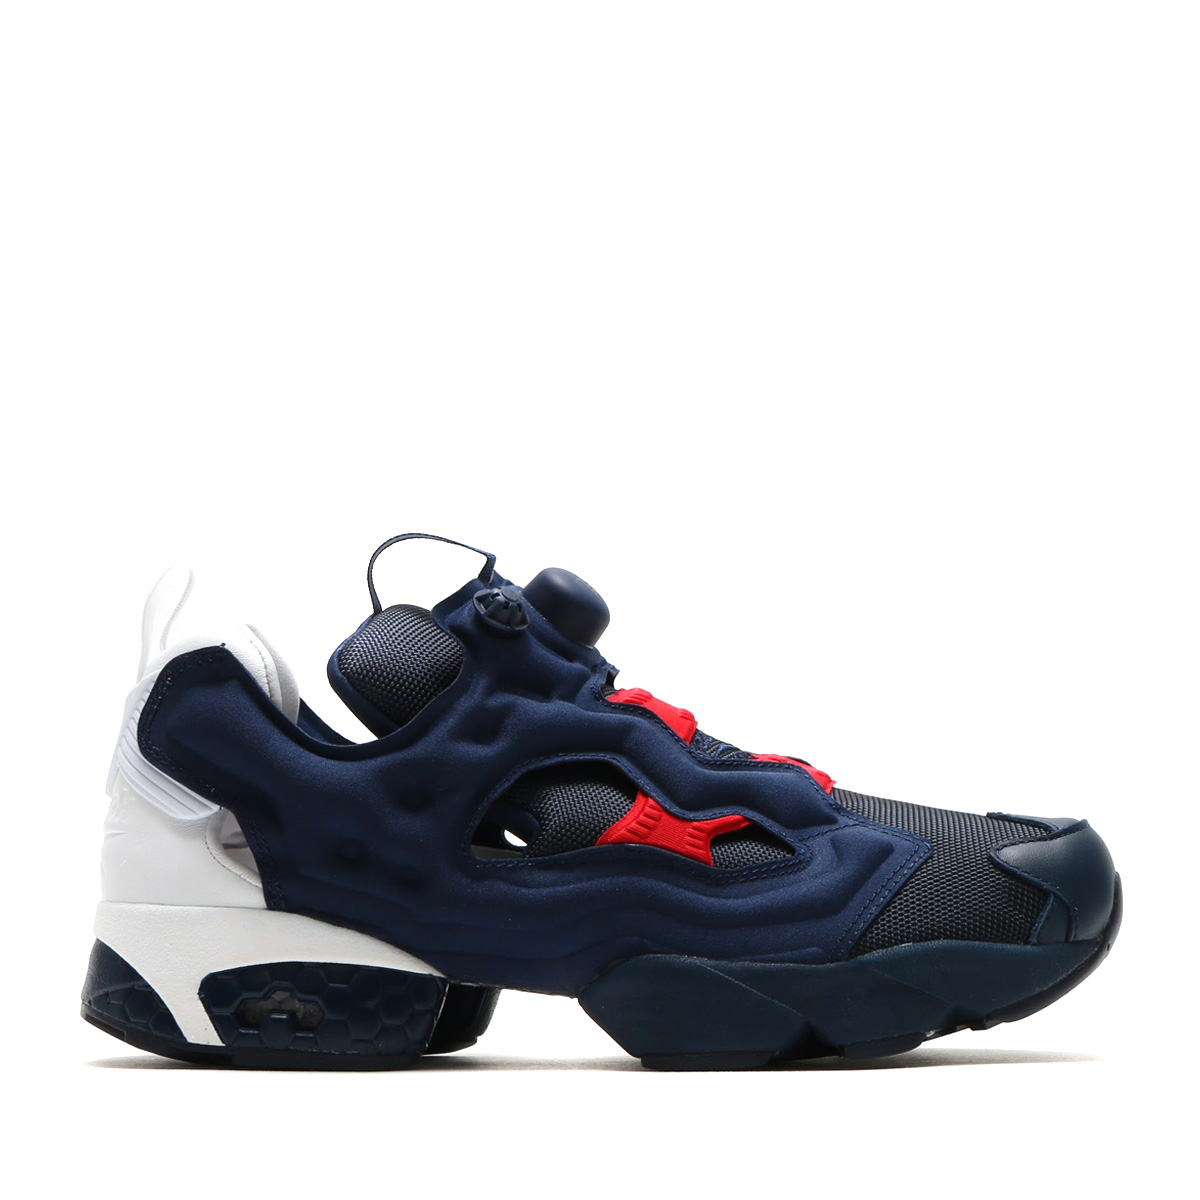 61c49c96fe0 Reebok INSTAPUMP FURY POP (リーボックインスタポンプフューリー POP) COLLEGE NAVY WHITE SCARLET  17SS-S